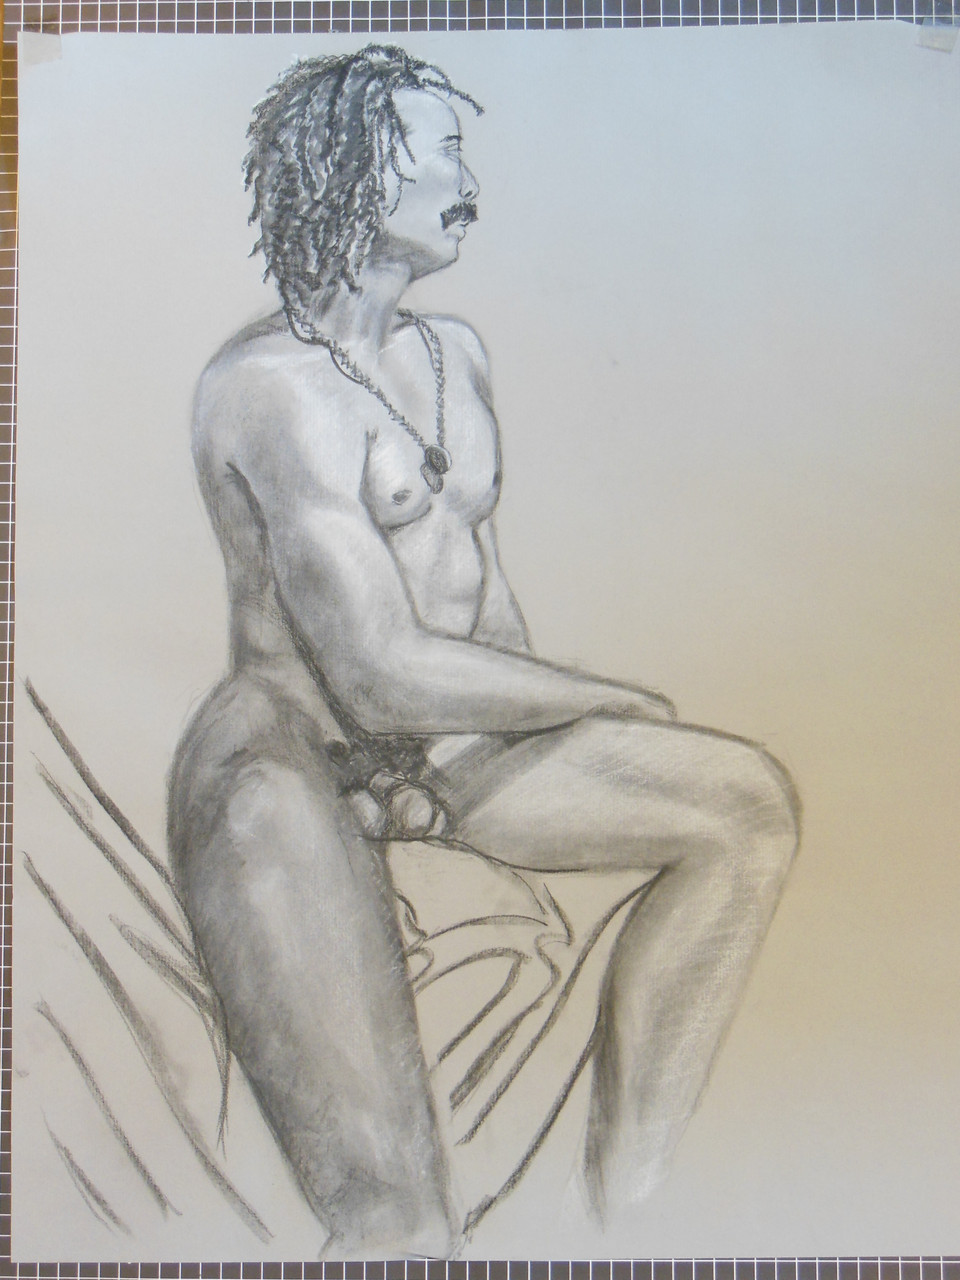 Nude Drawing: Charcoal & pastel on grey paper. 01 Jazz